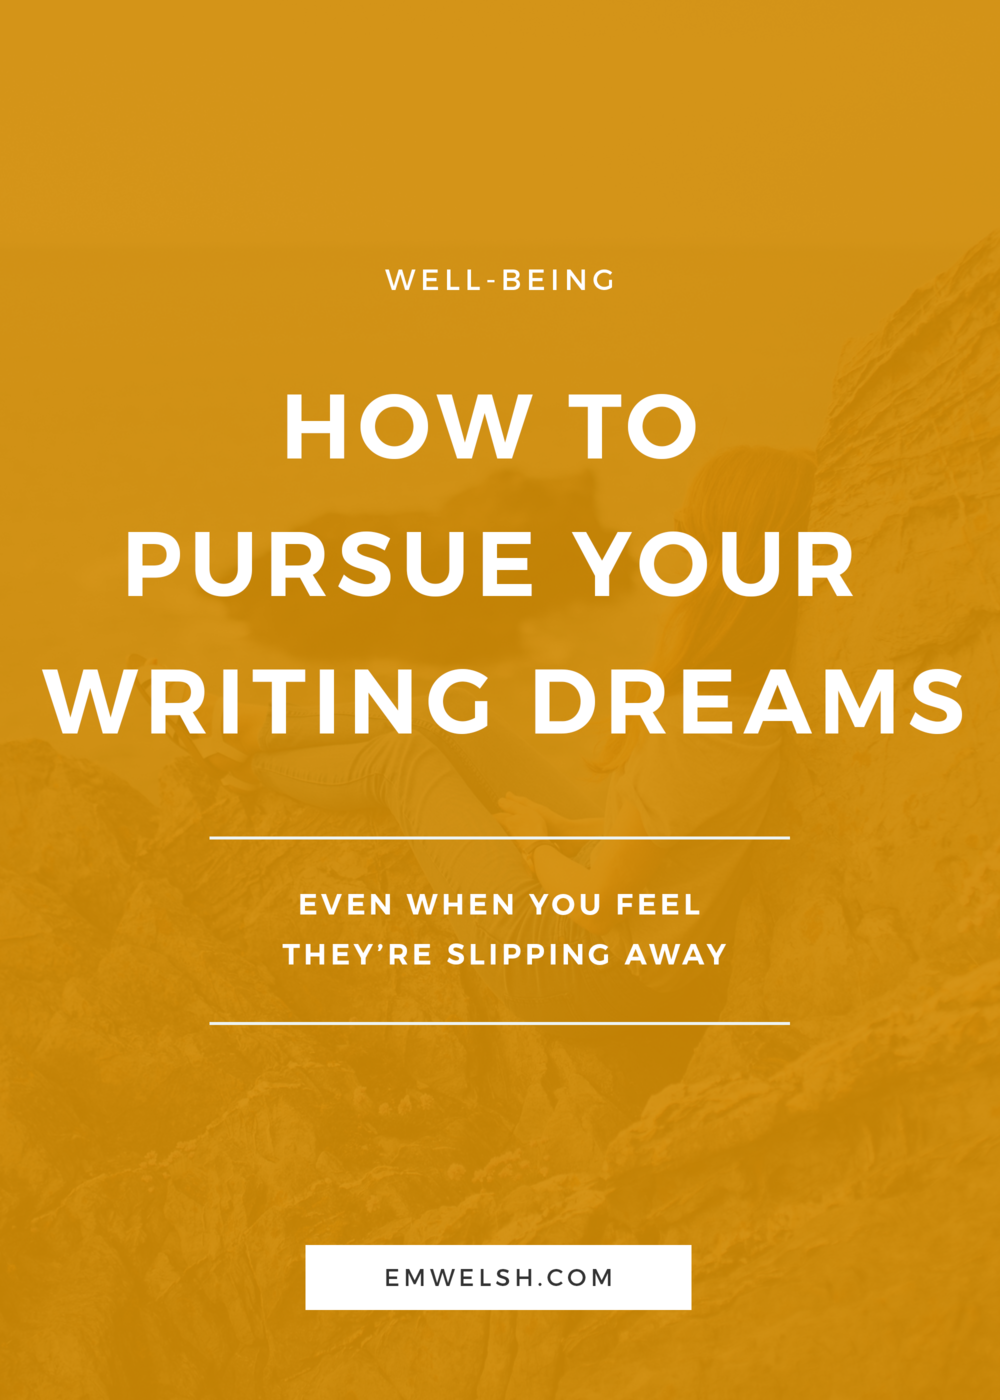 how-to-pursue-your-writing-dreams.png